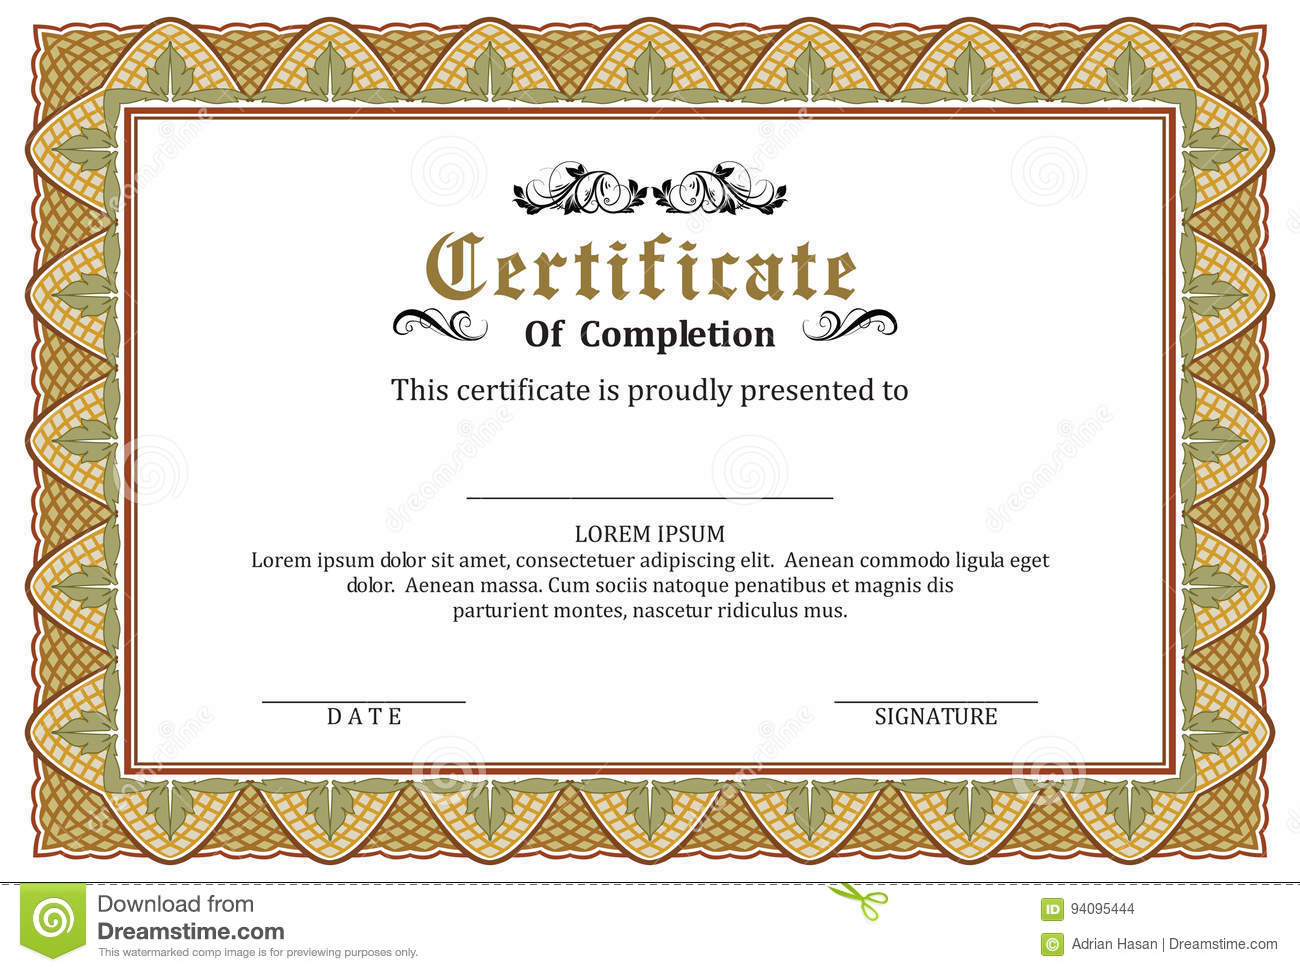 certificate frame template vector award stock vector illustration of border certificate 94095444 dreamstime com